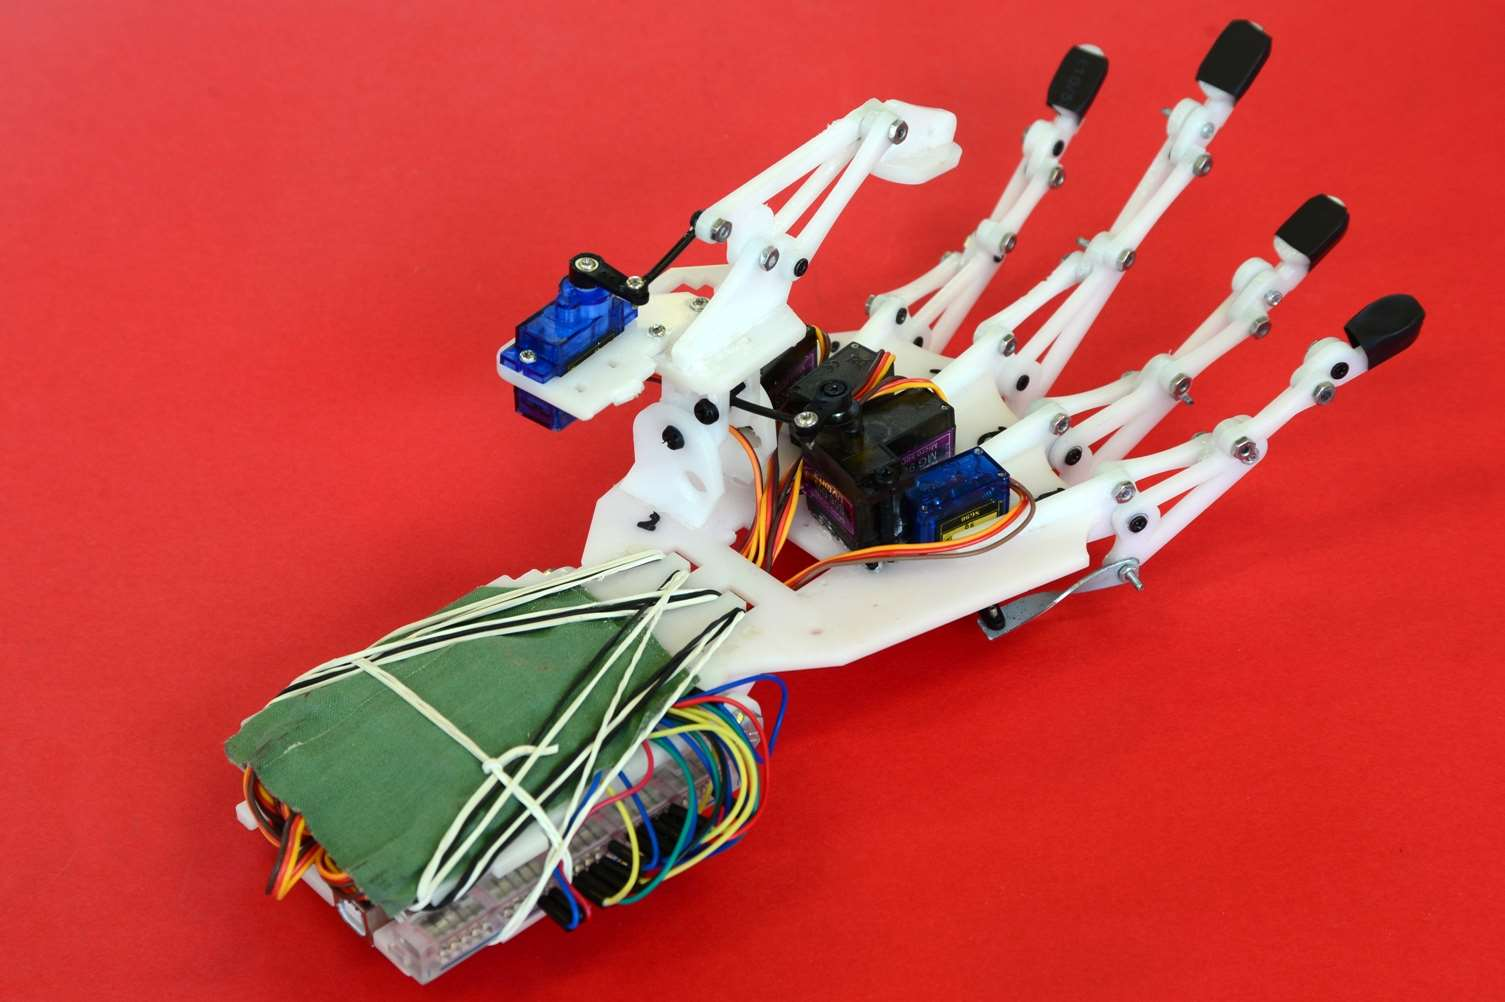 The low cost robotic arm is the latest project by Kent College's engineering team.